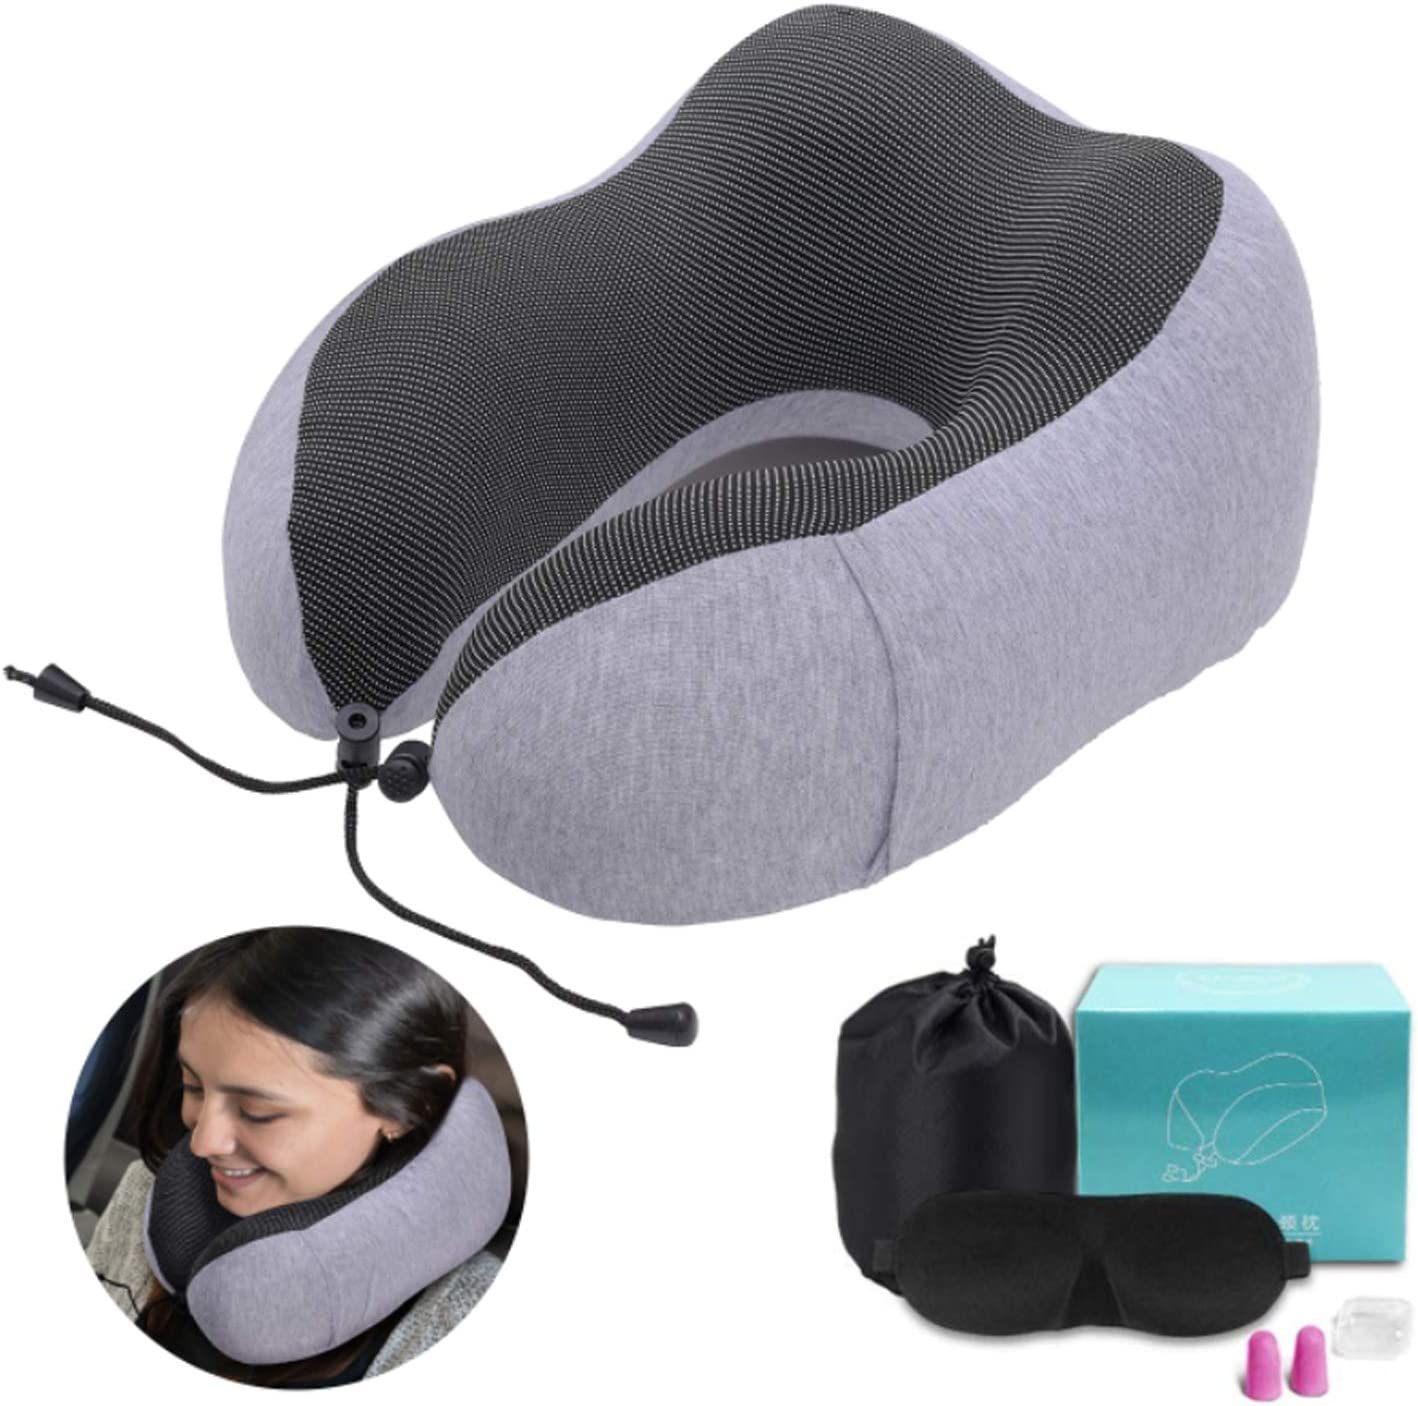 Neck Head Support Cushion Mesh fabric PROMIC Memory Foam Car Cushion Travel Pillow Car Pillow Fits Car Home Office Chair